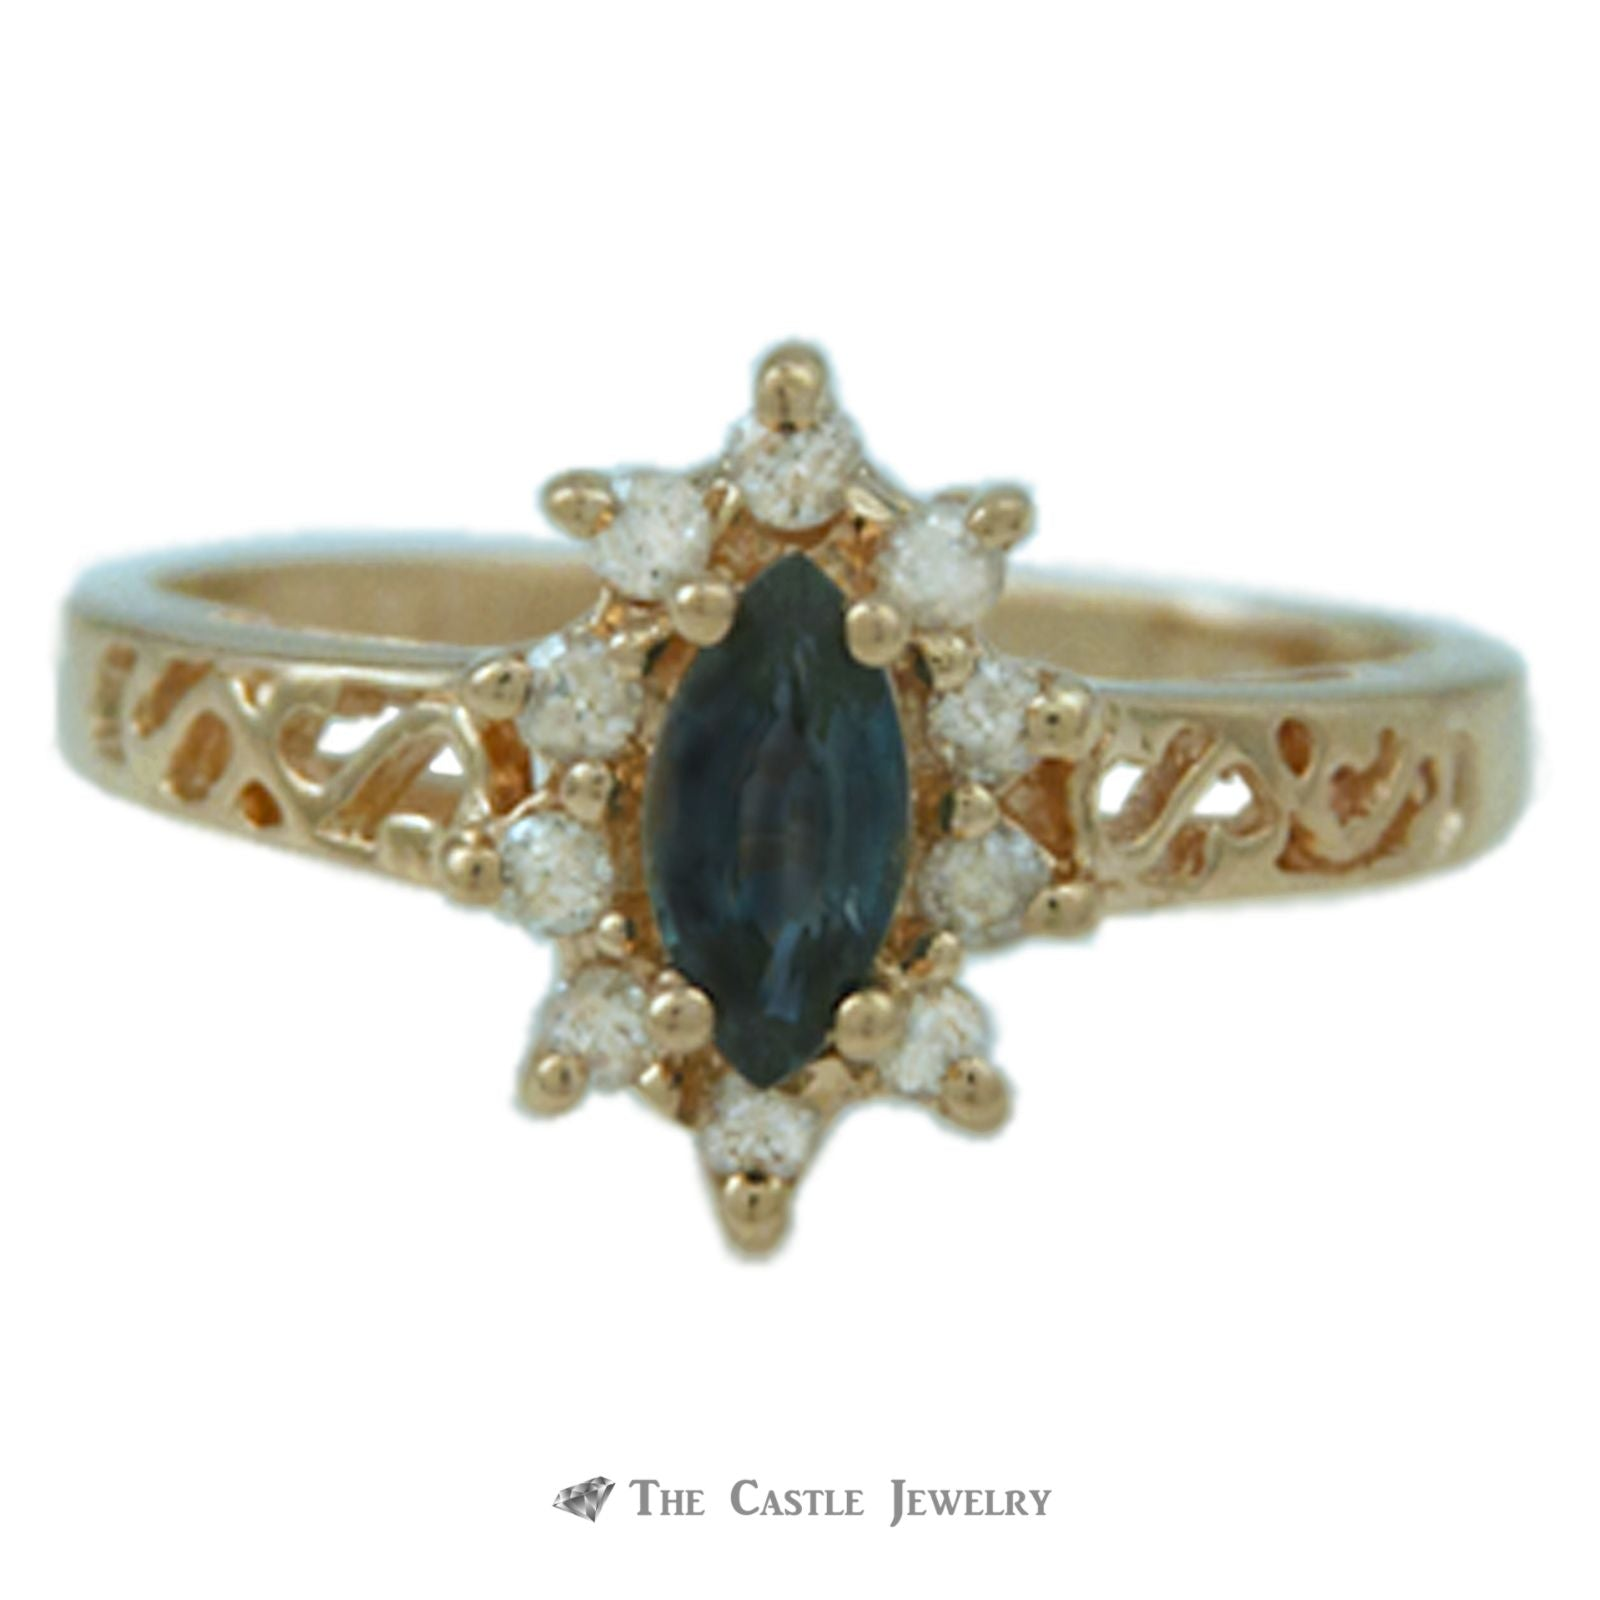 Marquise Sapphire Ring with Diamond Halo & Scroll Mounting in 14K Yellow Gold